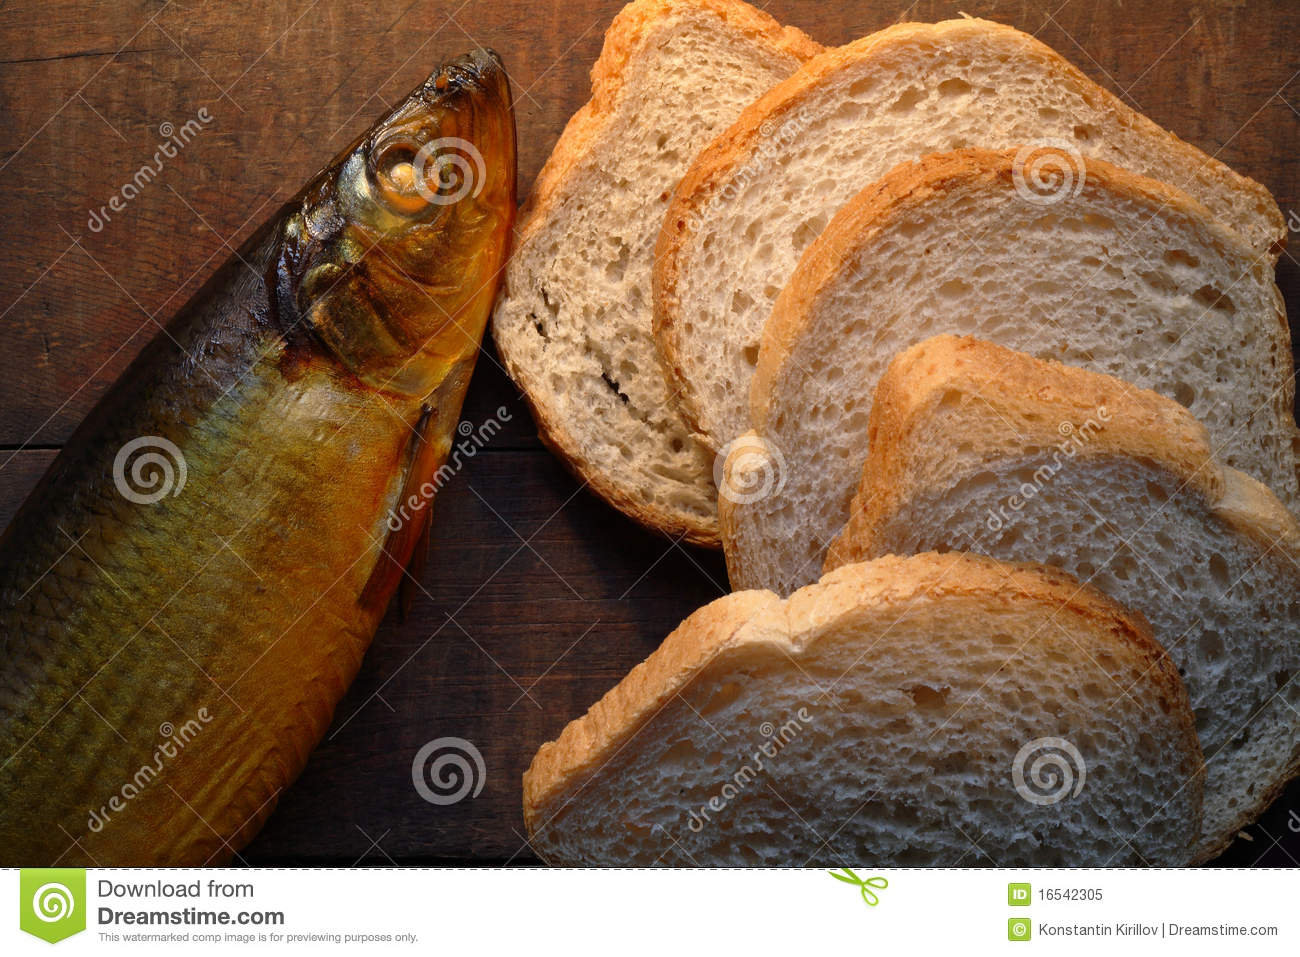 Fish and bread royalty free stock photo image 16542305 for Fishing with bread